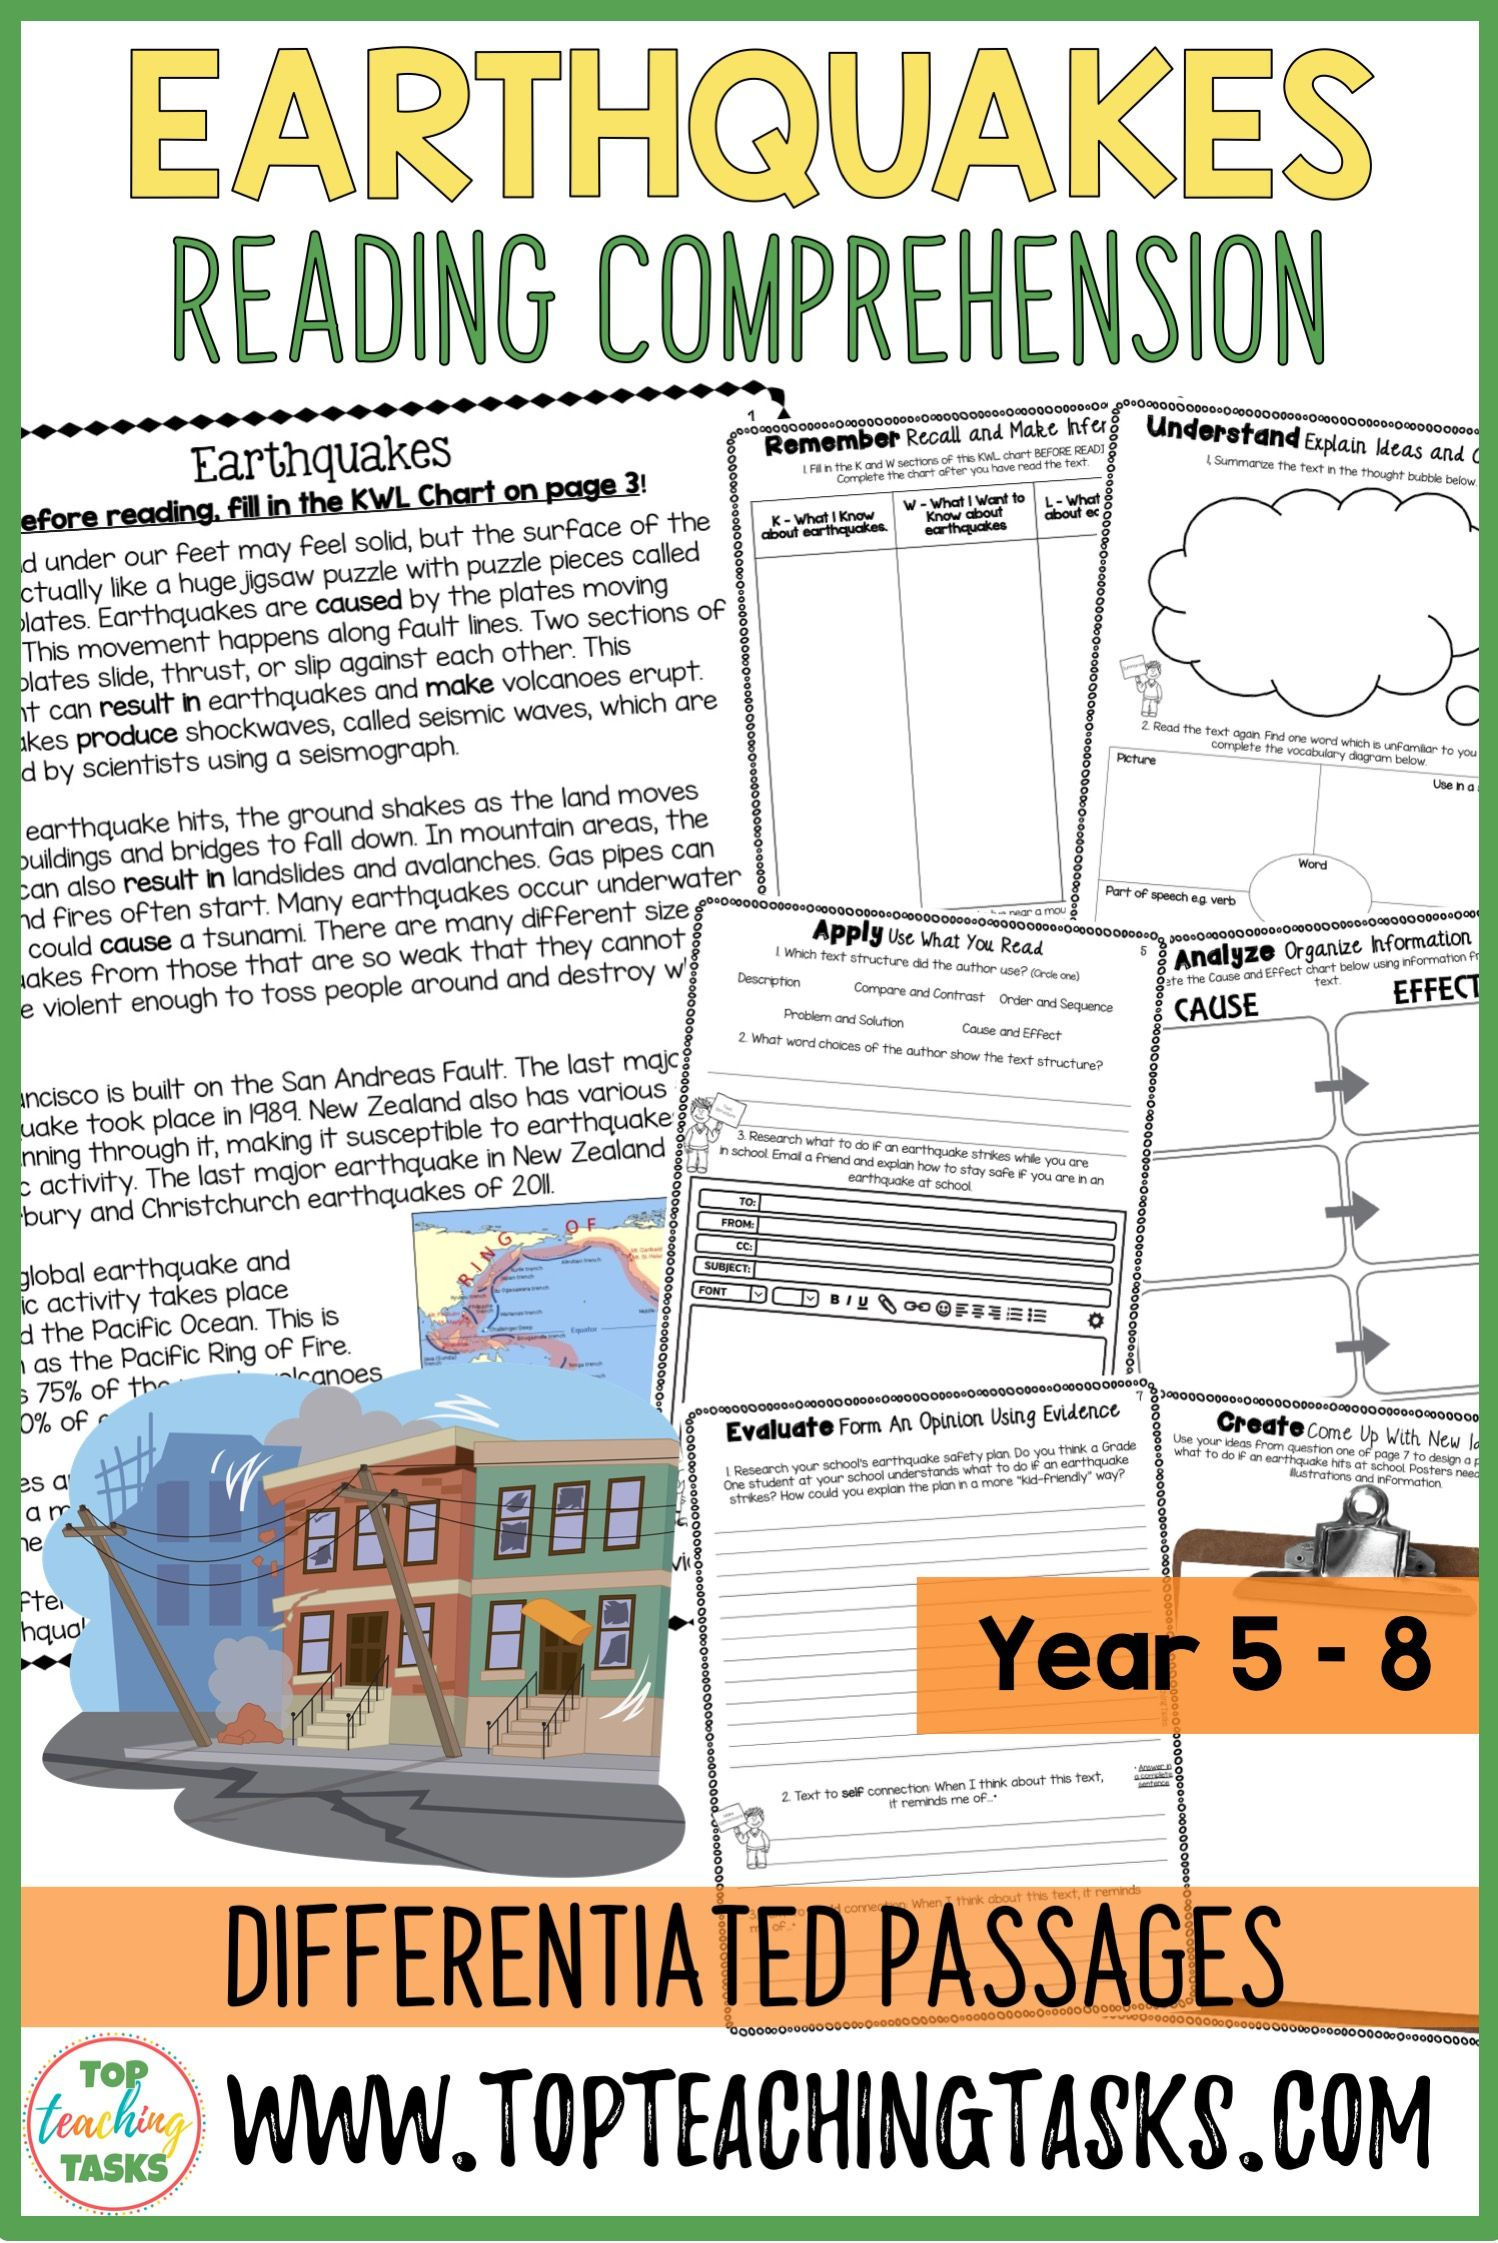 Earthquakes Reading Comprehension Passages And Questions